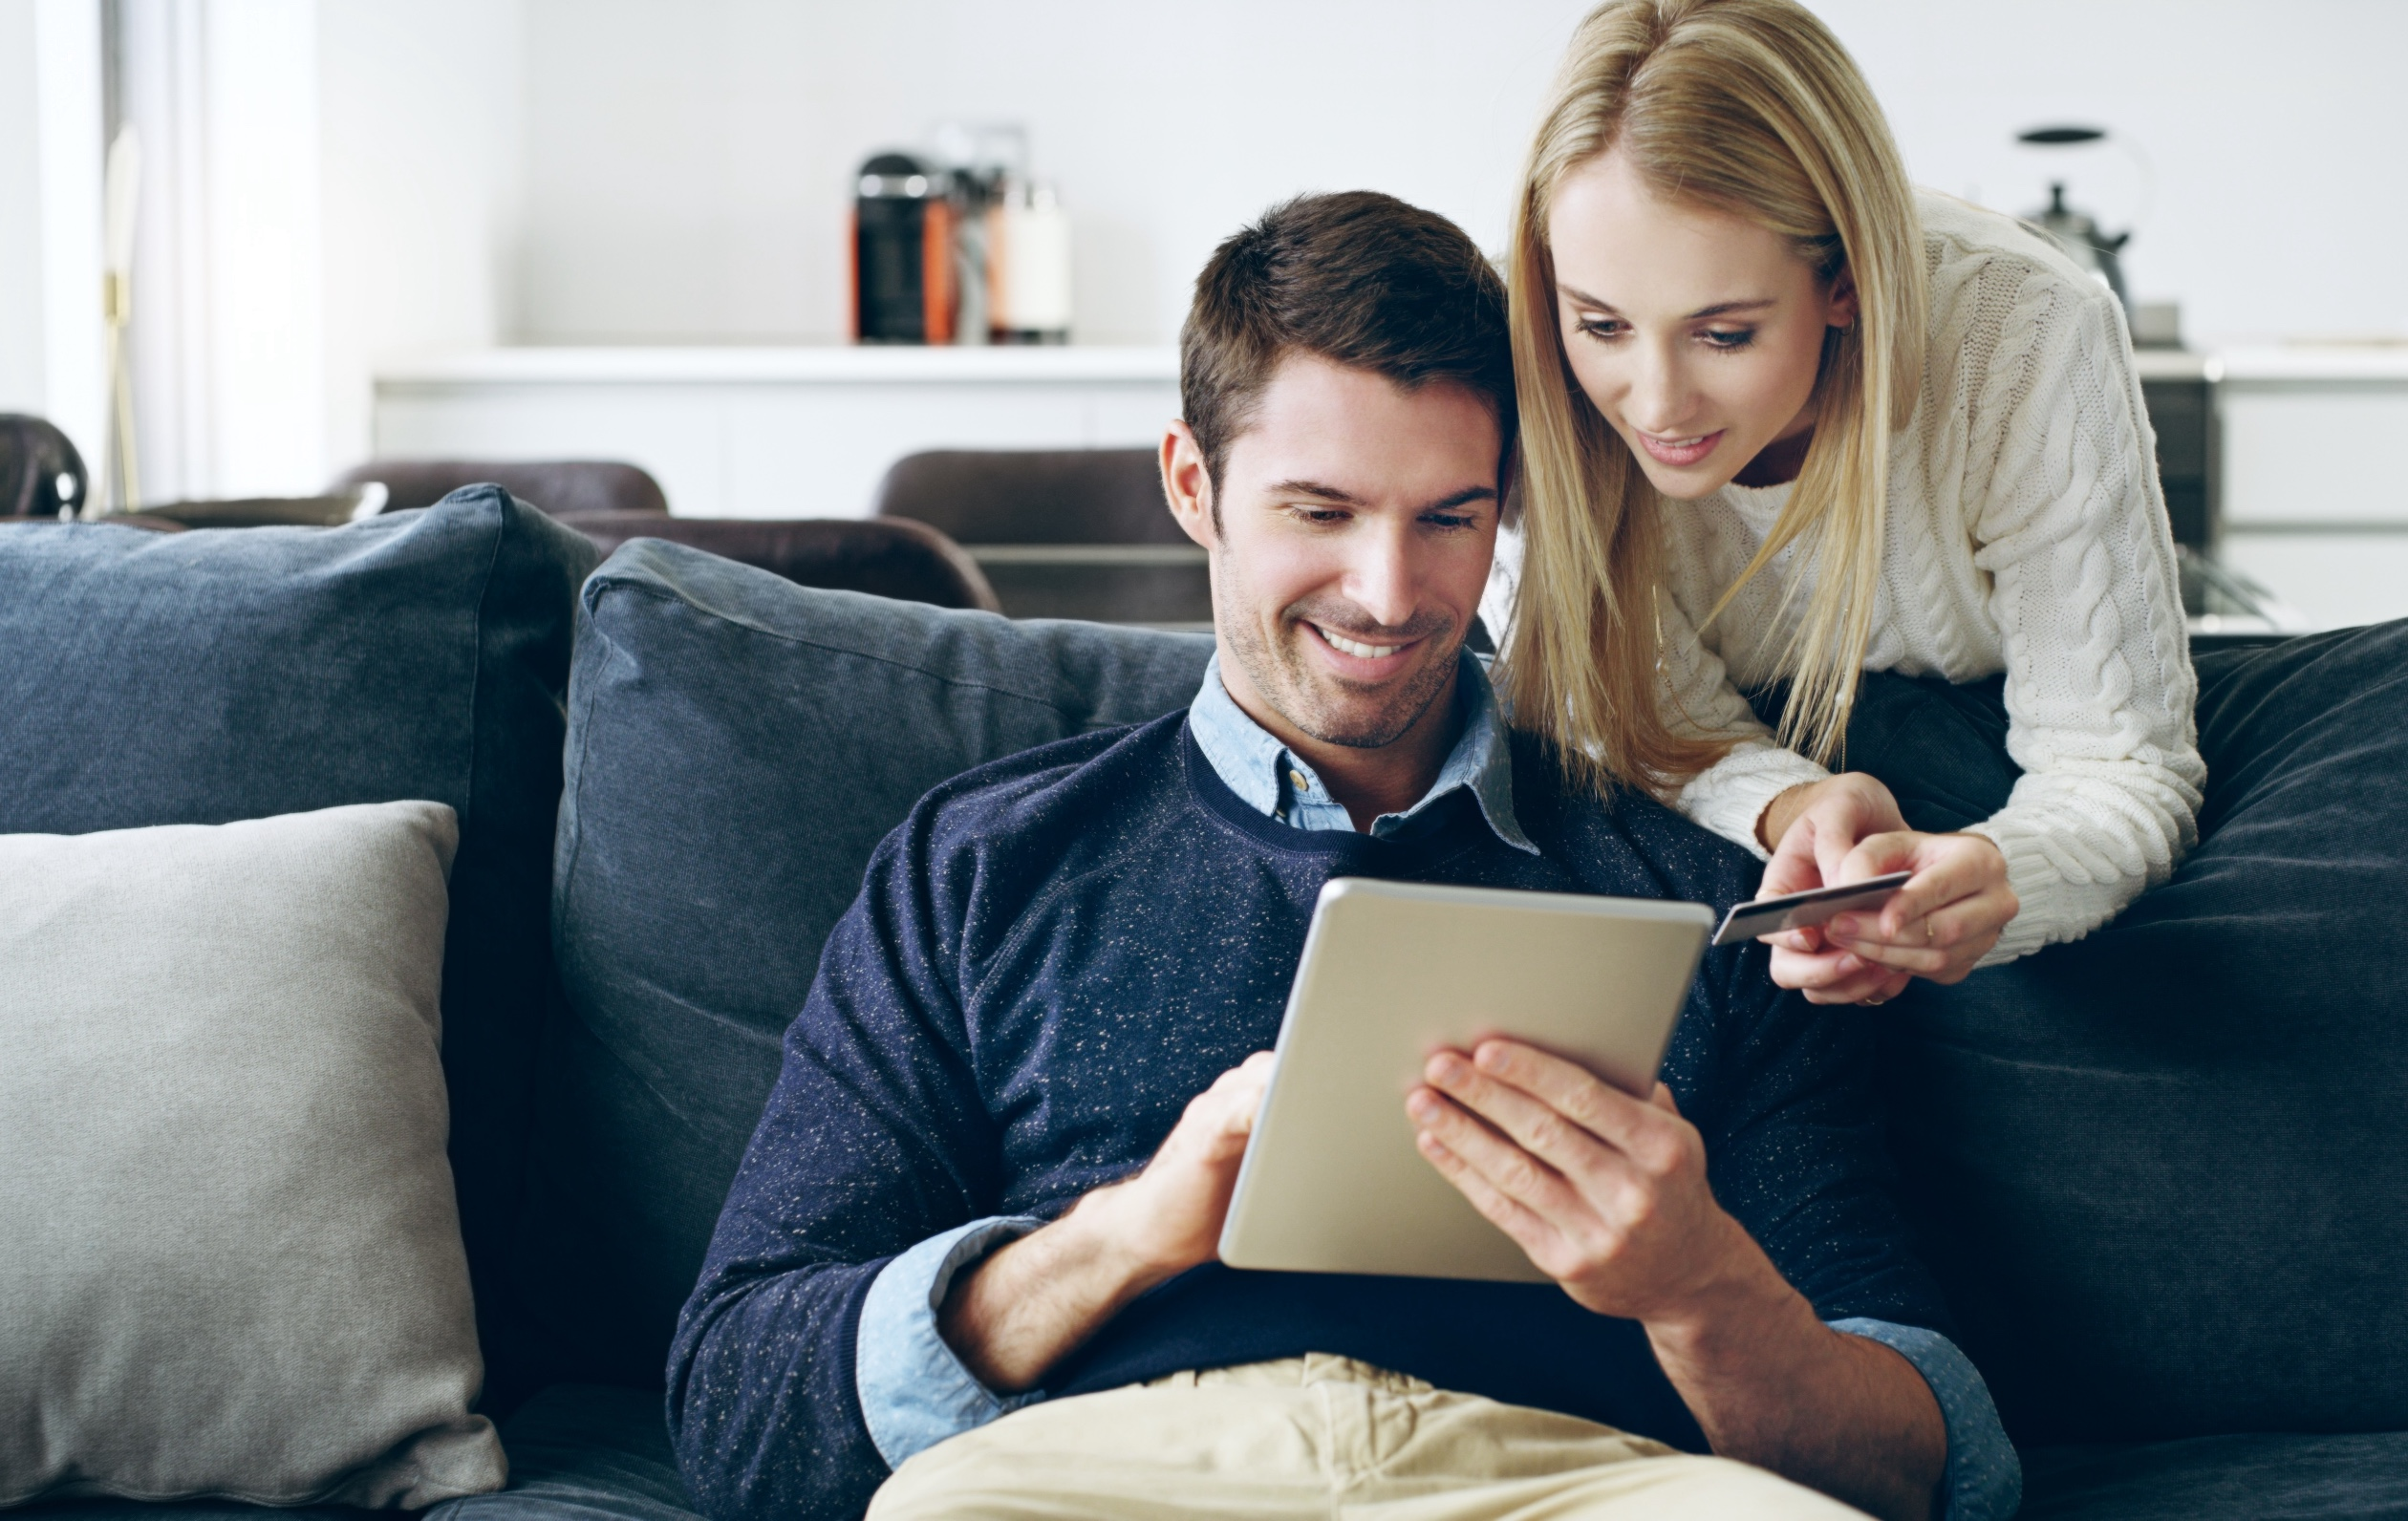 smiling couple making a purchase on a mobile device